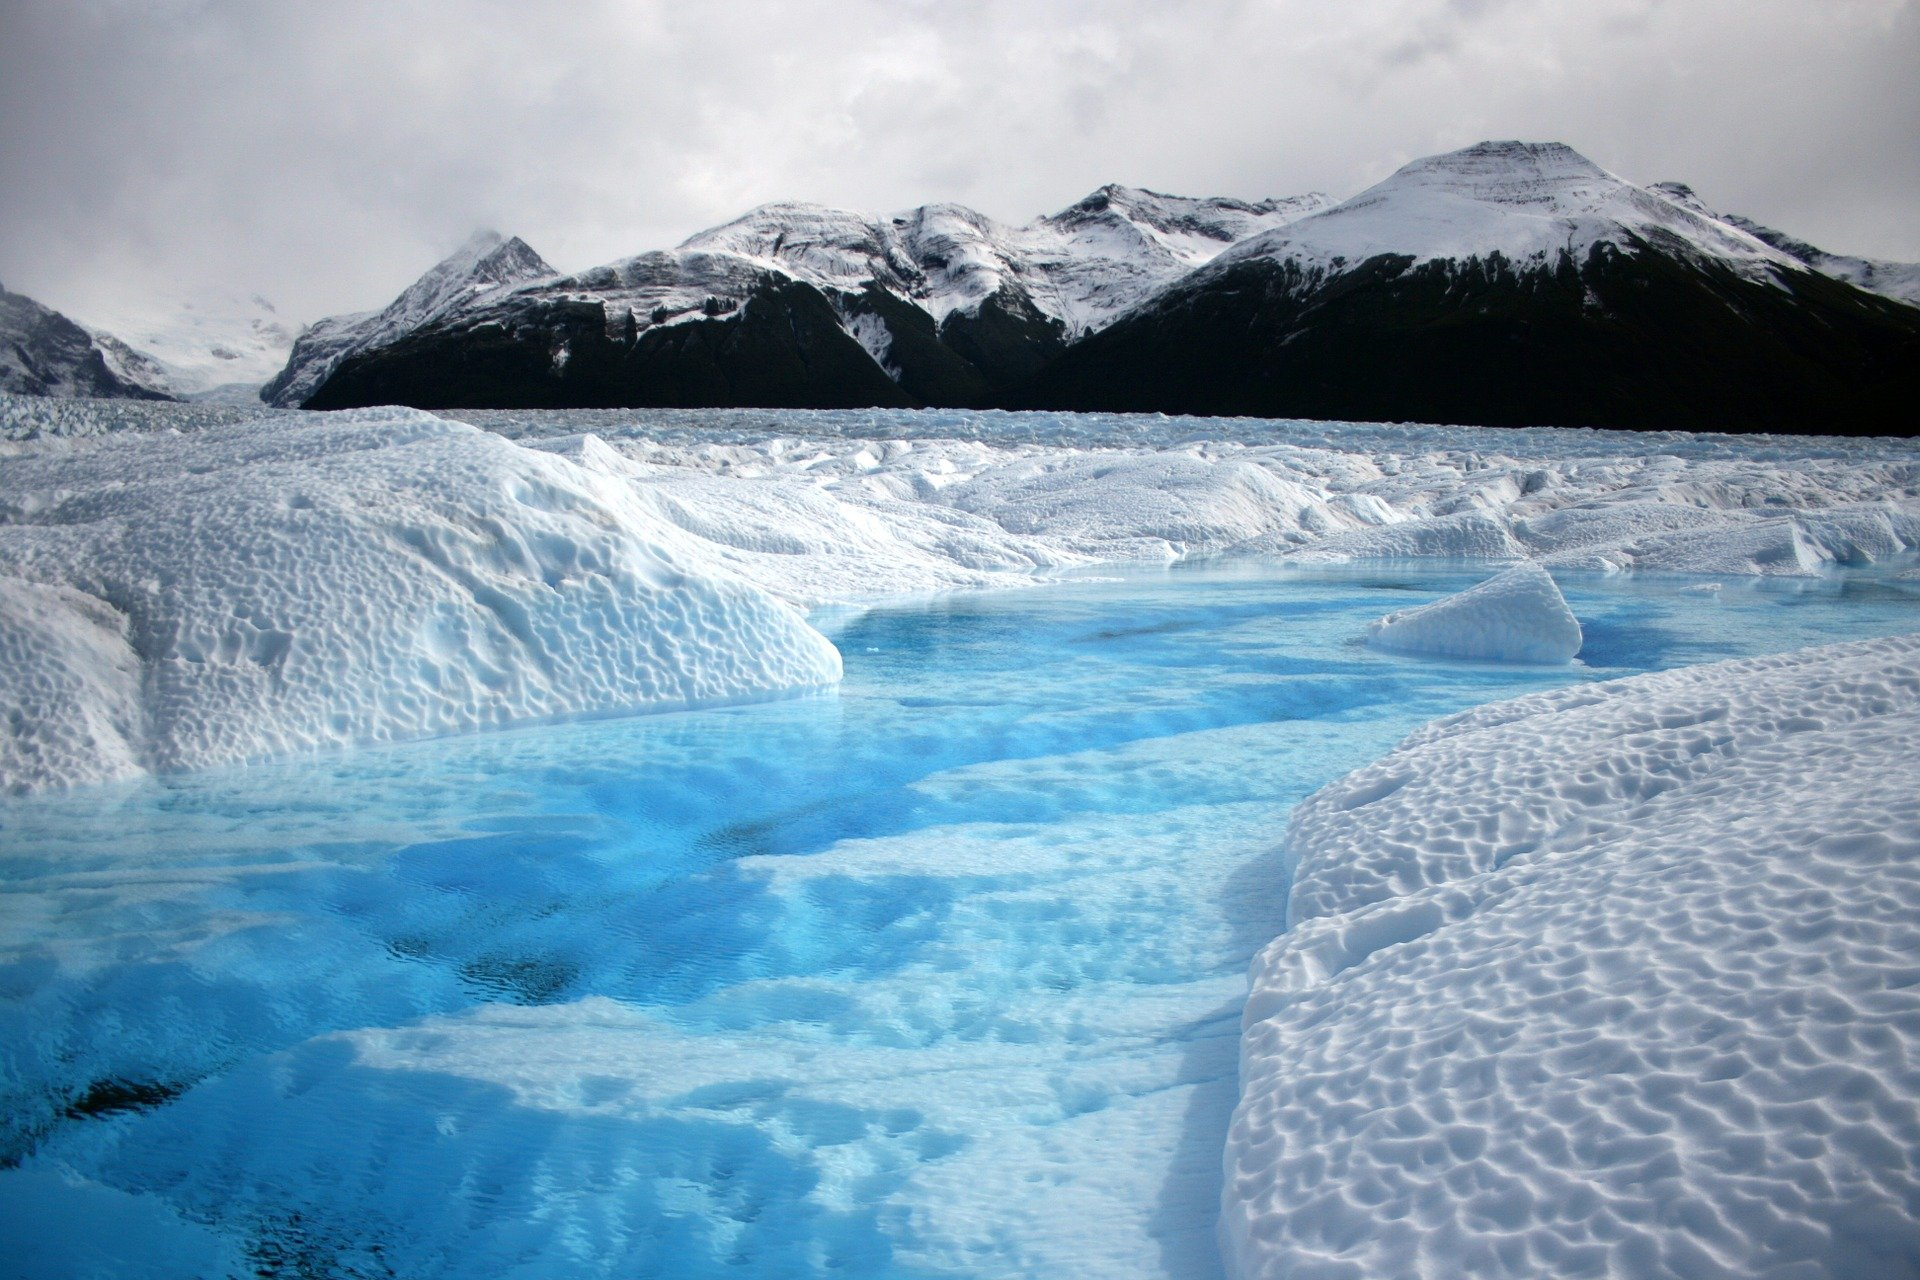 Glacier water on surface